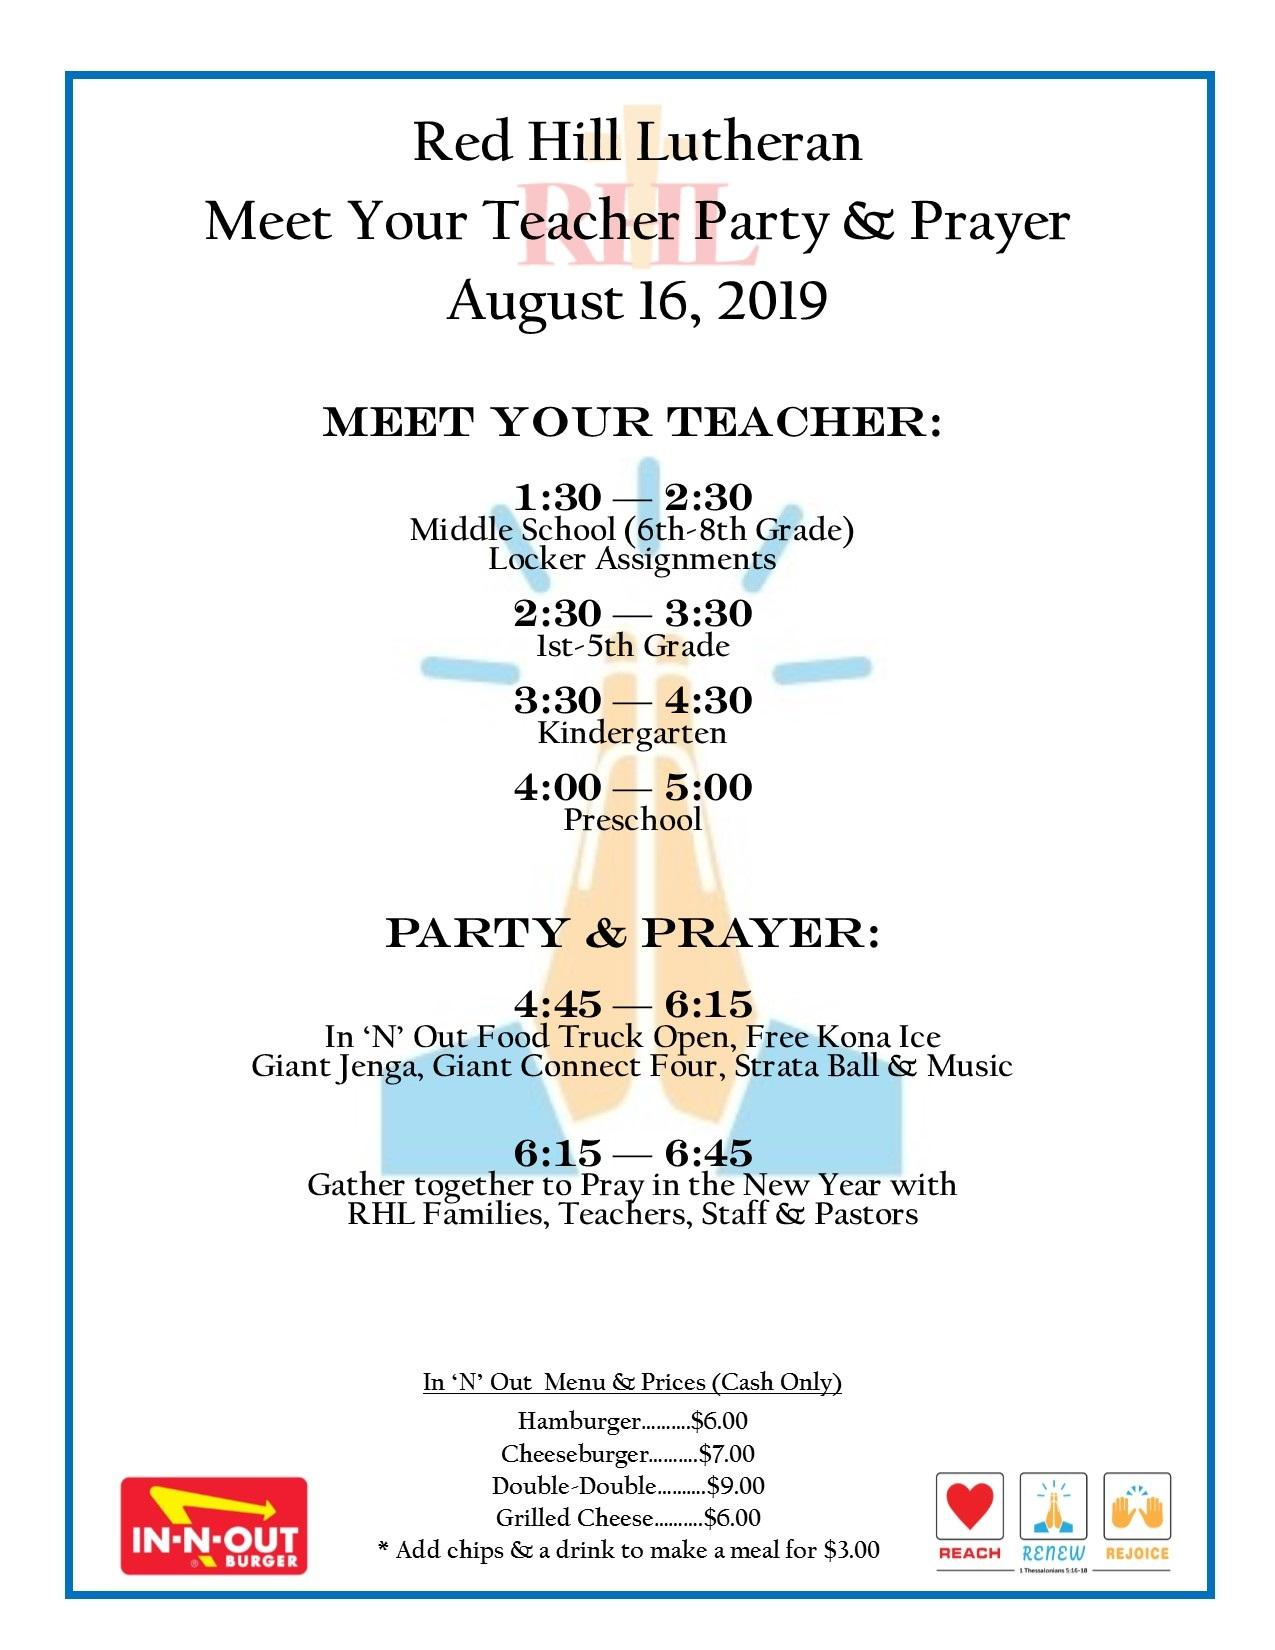 Meet Your Teacher Party and Prayer Poster